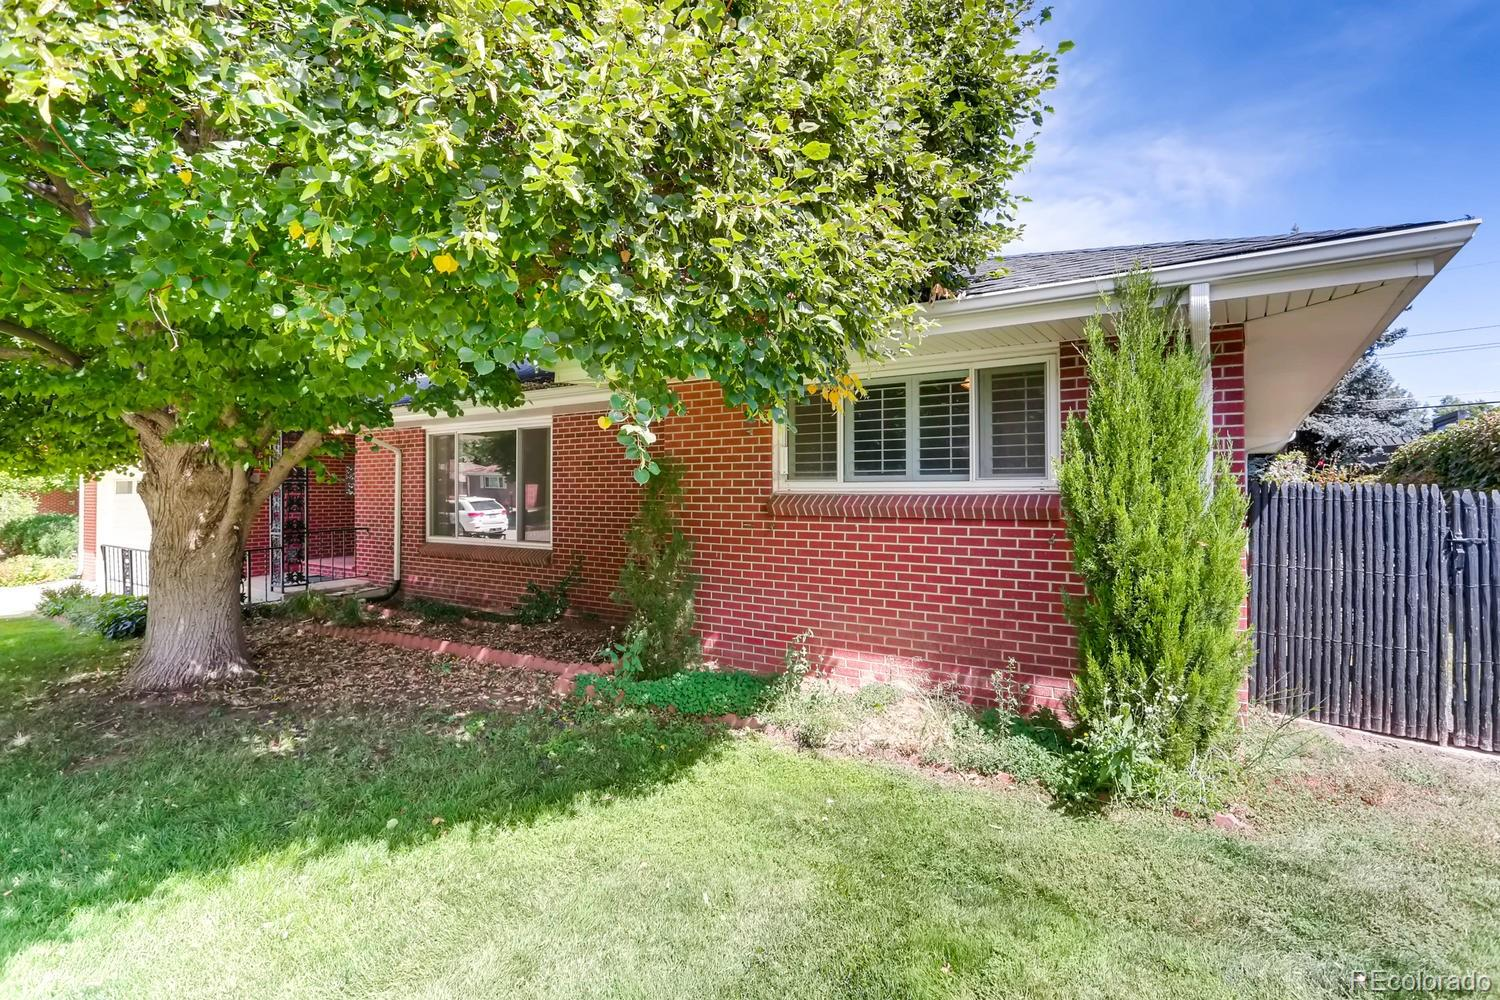 MLS# 7750175 - 2 - 3054 S Columbine Street, Denver, CO 80210